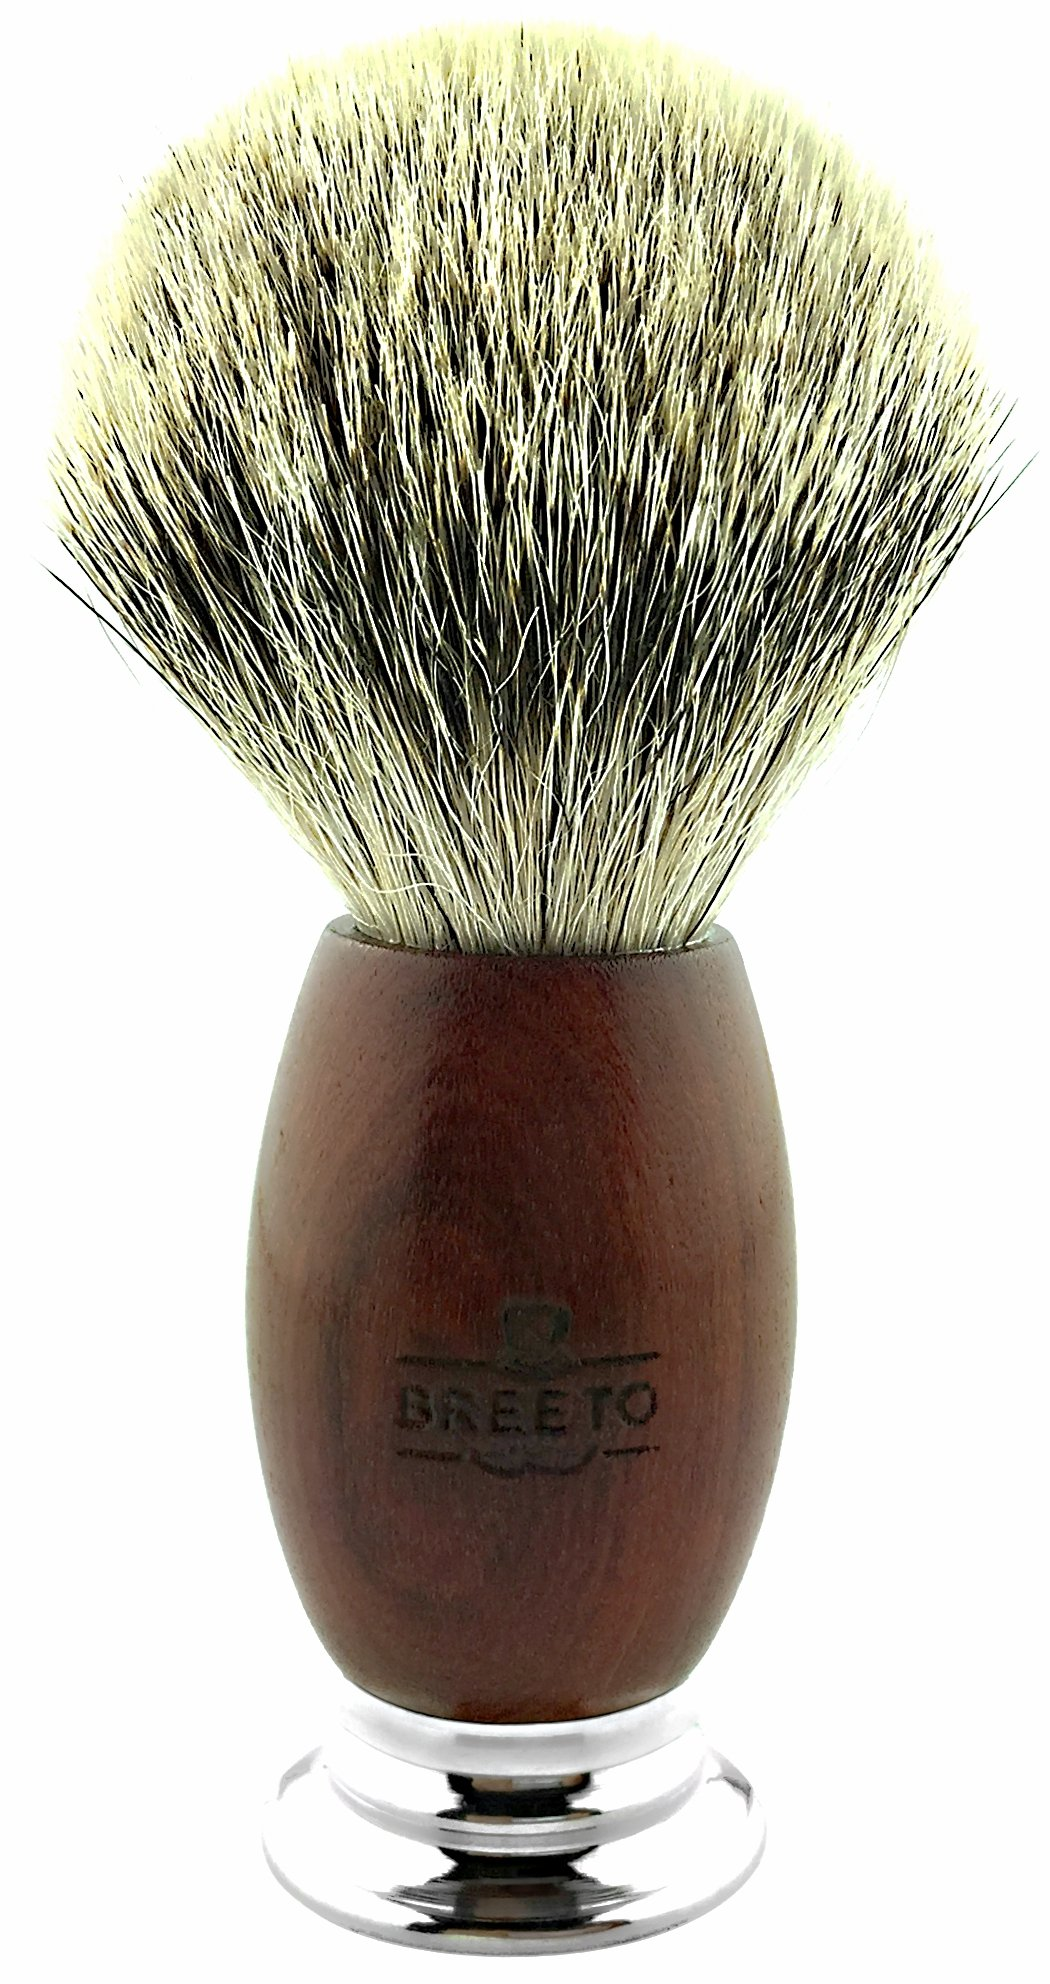 Breeto 100% Silvertip Badger Shaving Brush with Handcrafted Algum Handle